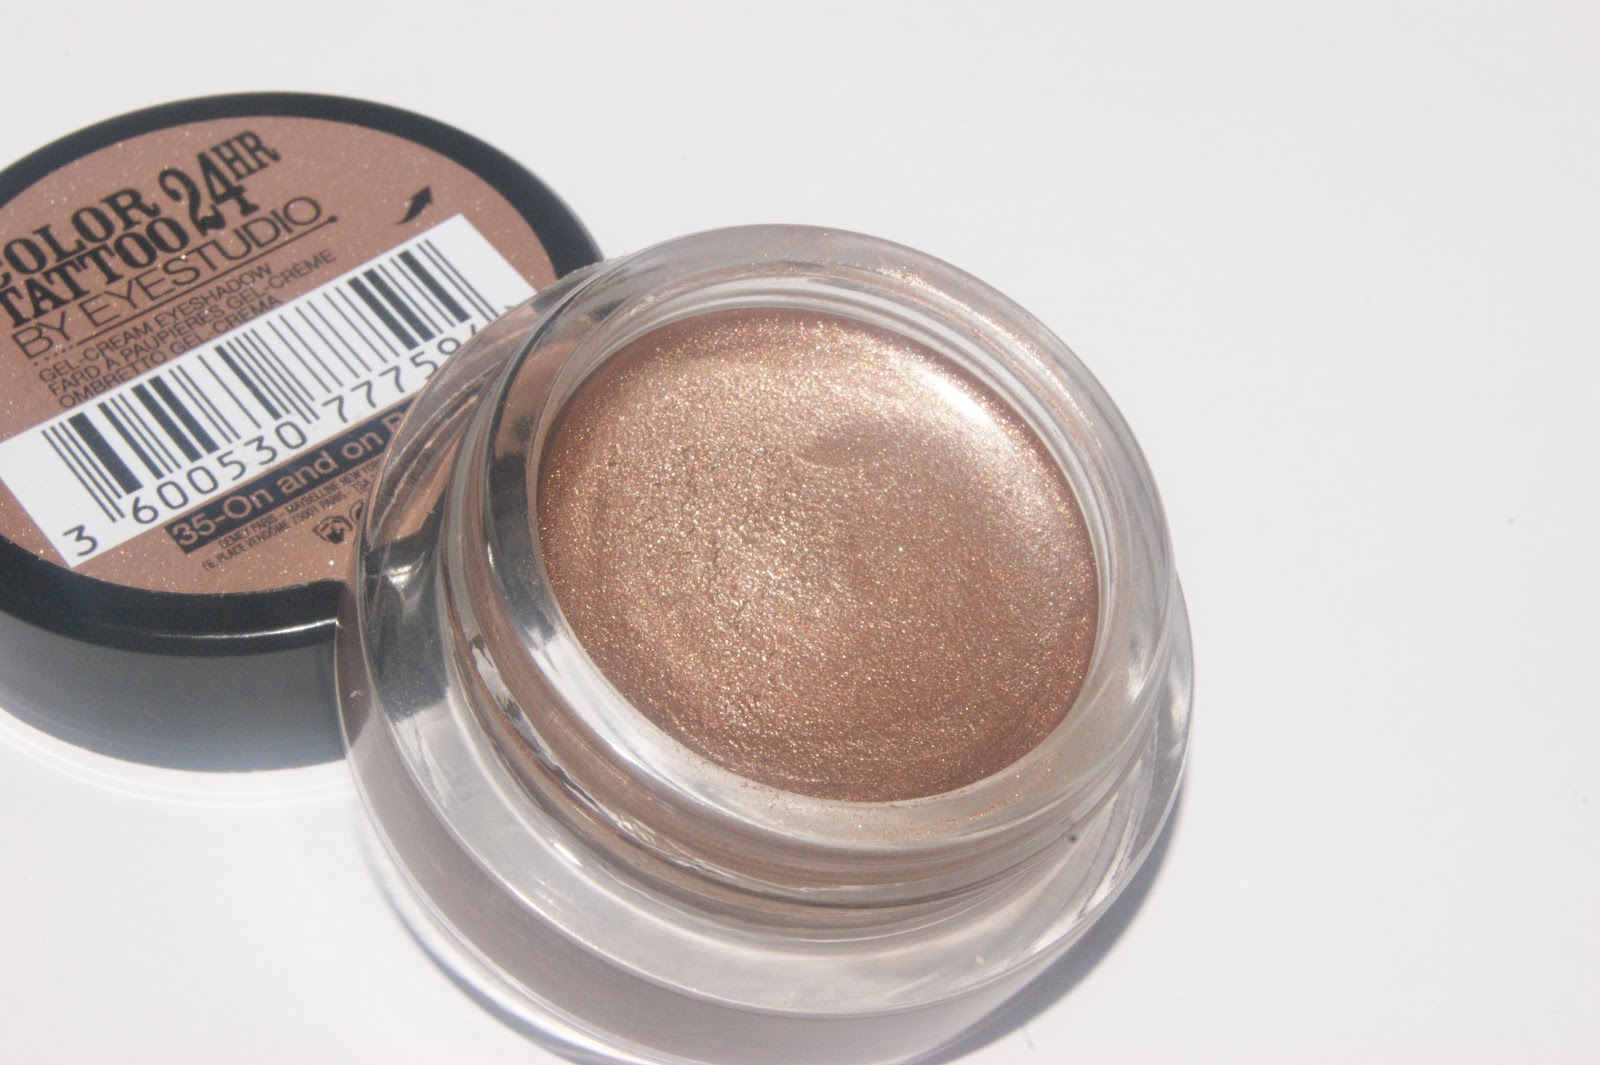 Maybelline color tattoo 24hr eyeshadow in on and on bronze for Color tattoo maybelline